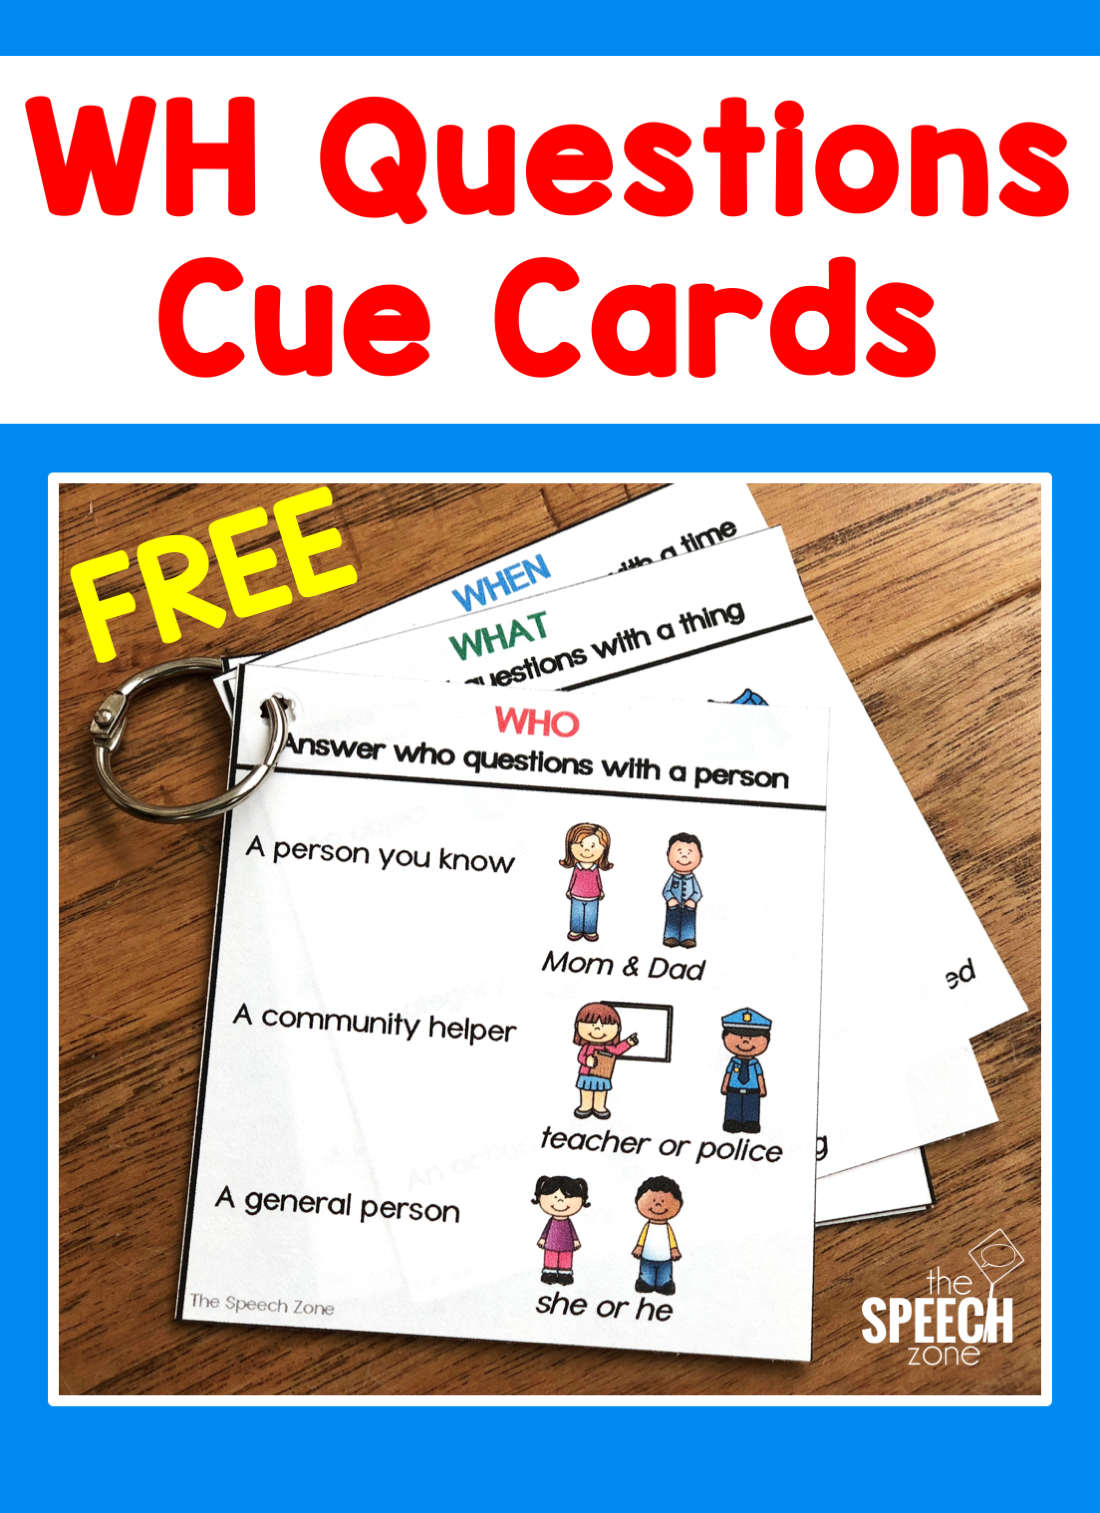 Use These Free Wh Questions Cue Cards As Visuals For